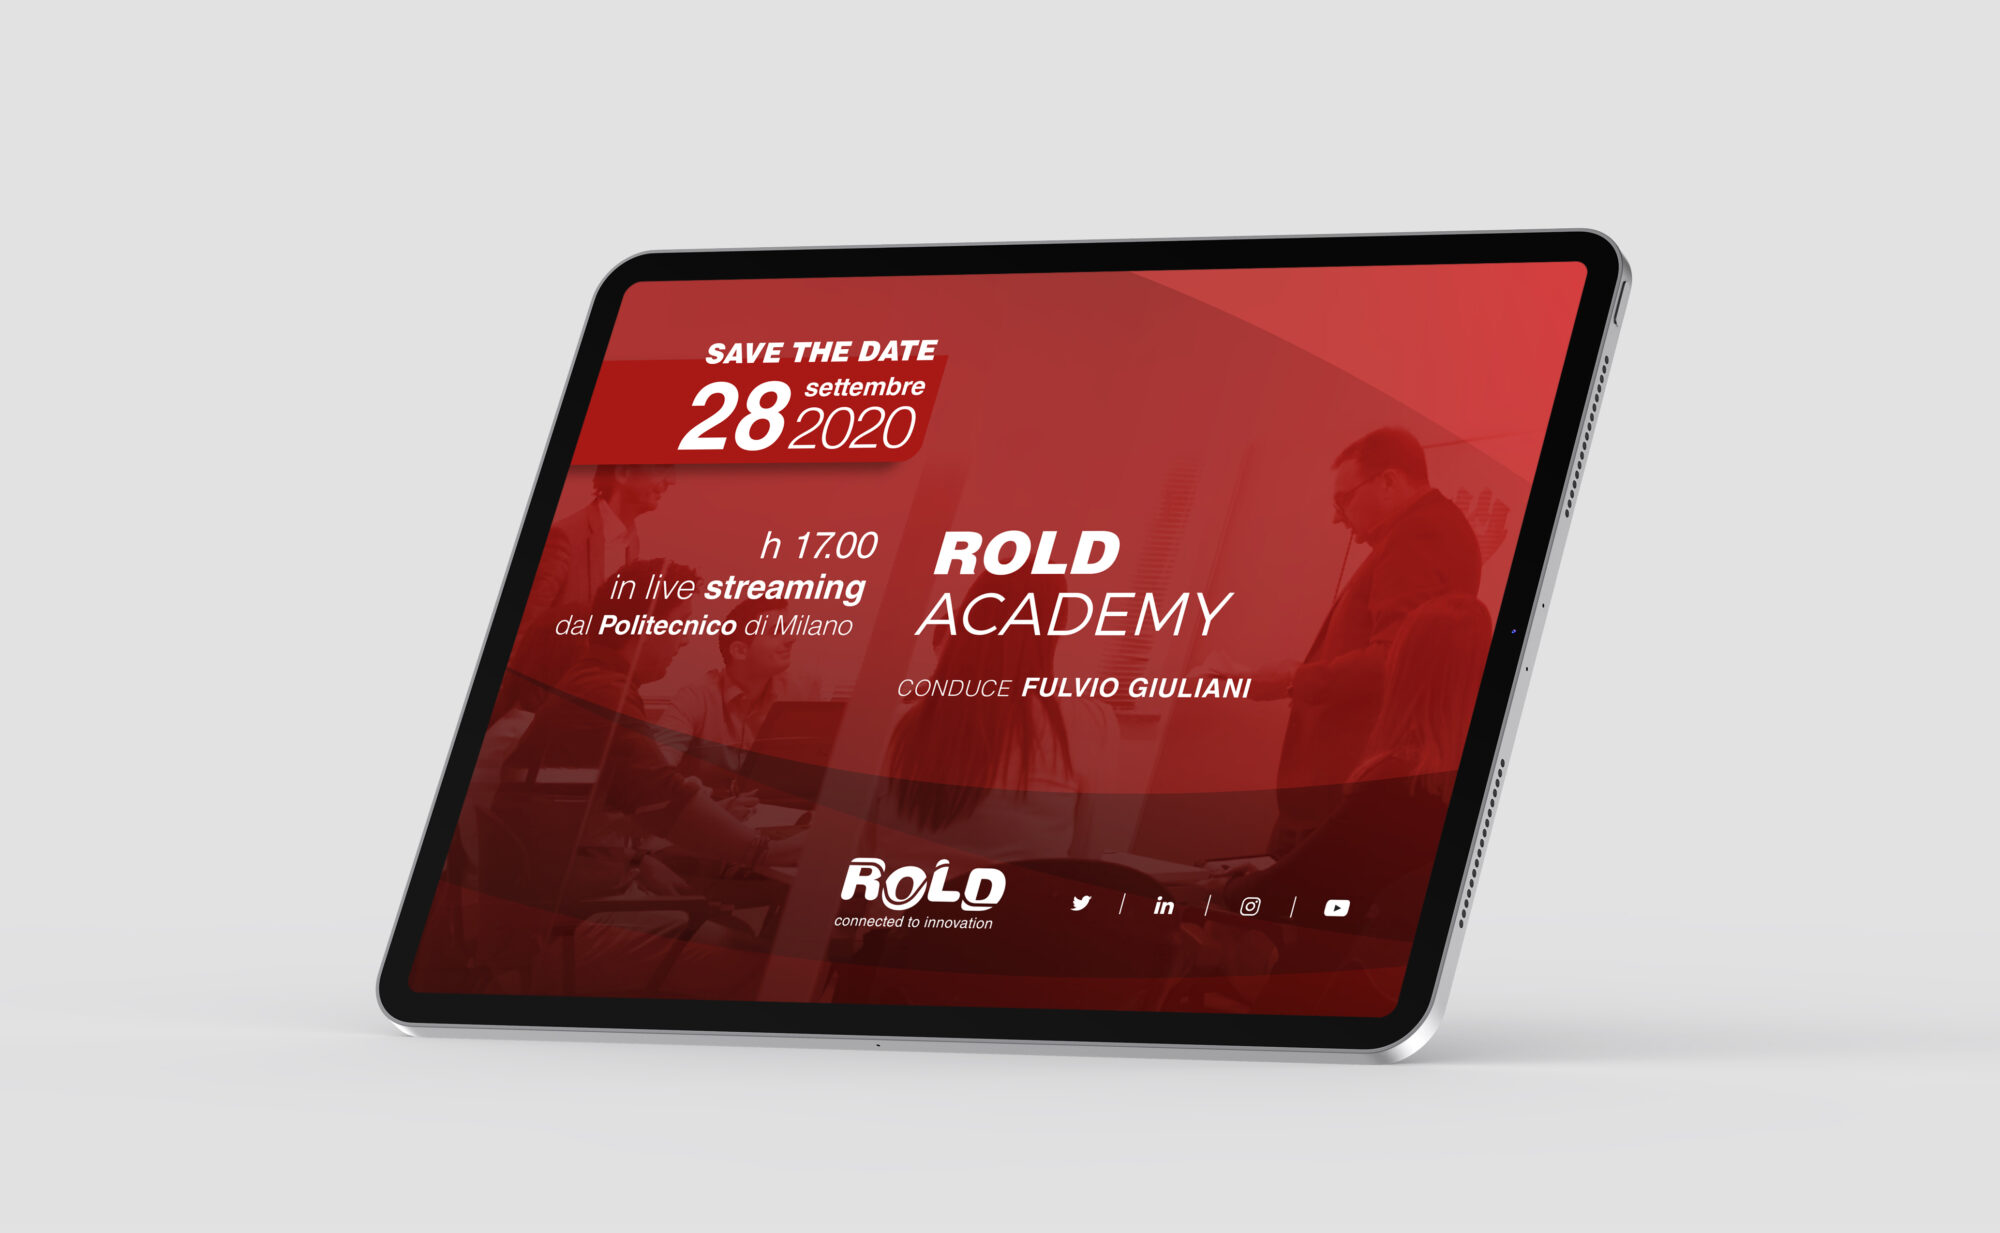 rold academy save the date